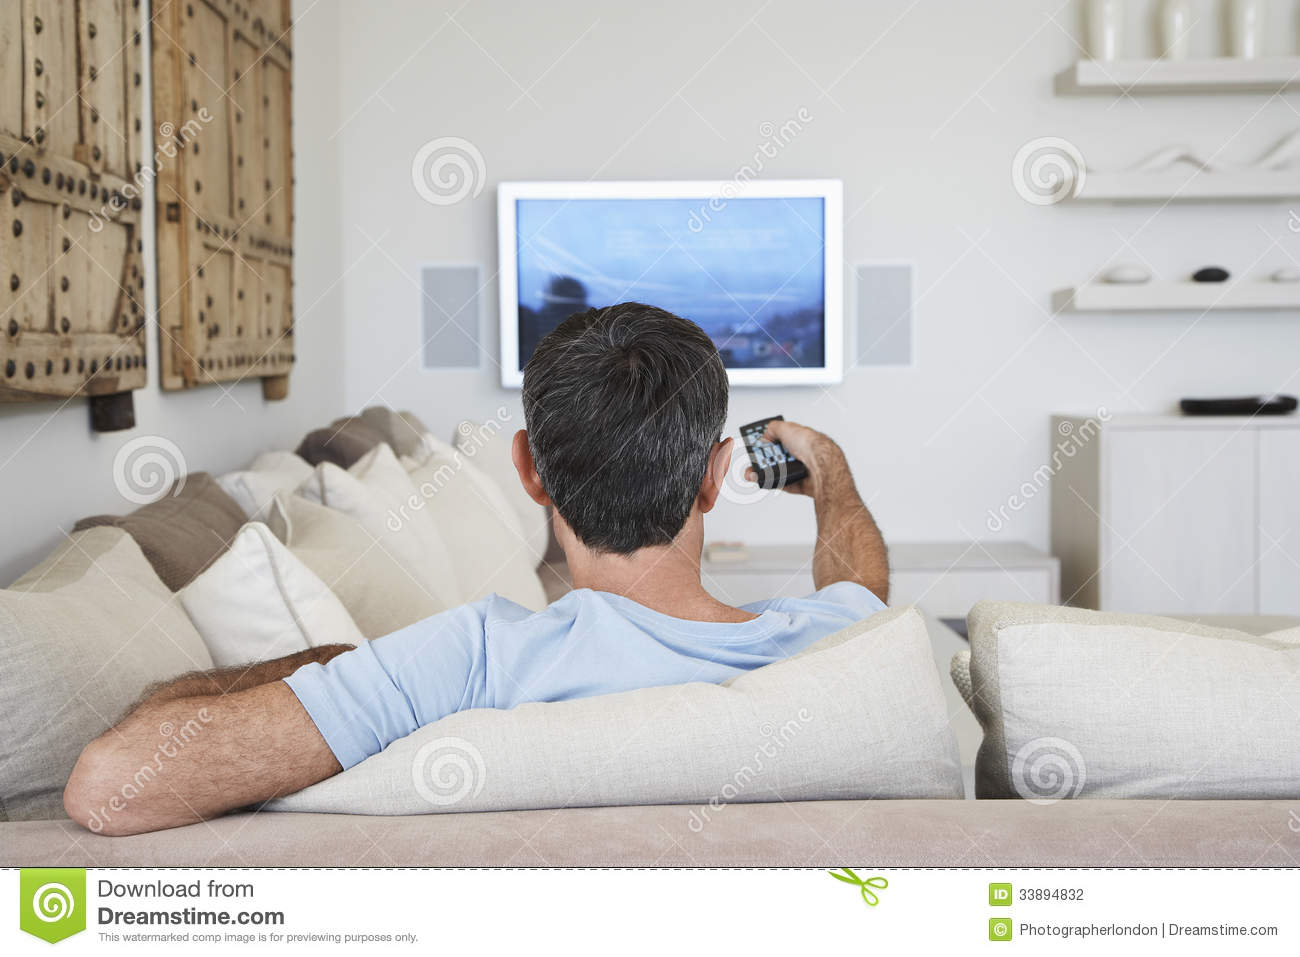 Man Watching Television In Living Room